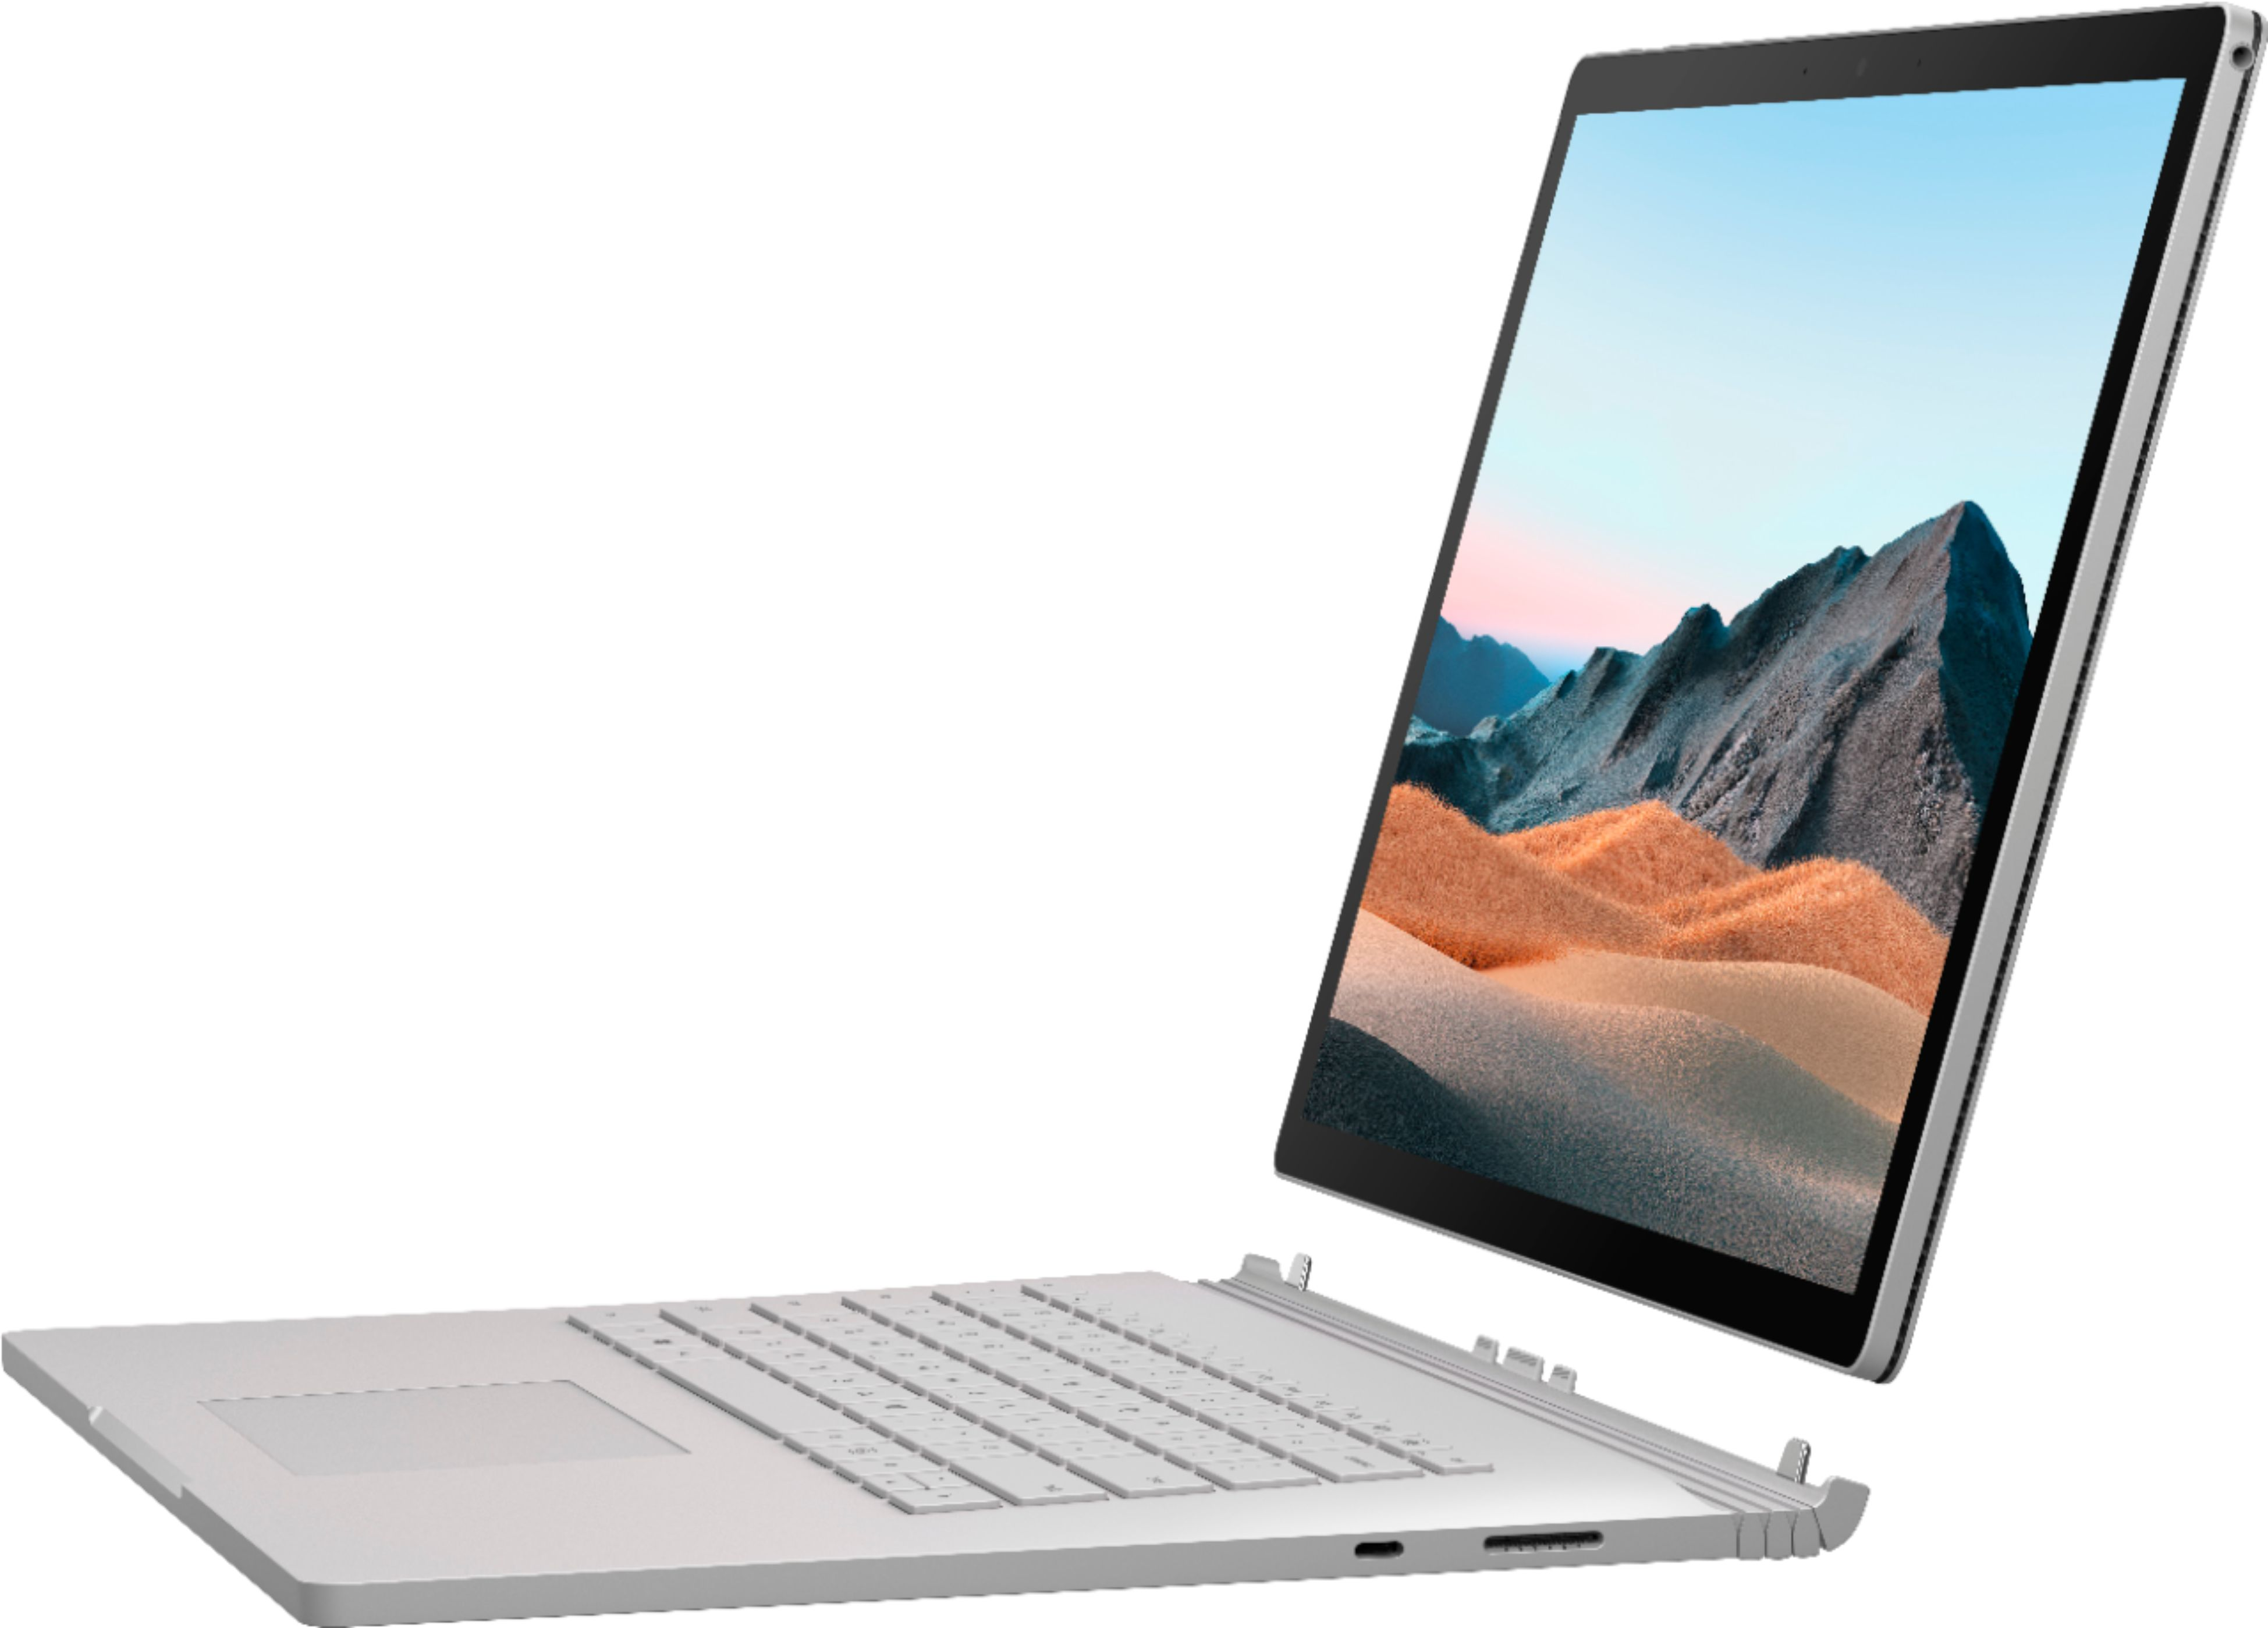 """Front Zoom. Microsoft - Surface Book 3 15"""" Touch-Screen PixelSense™ - 2-in-1 Laptop - Intel Core i7 - 32GB Memory - 1TB SSD - Platinum."""